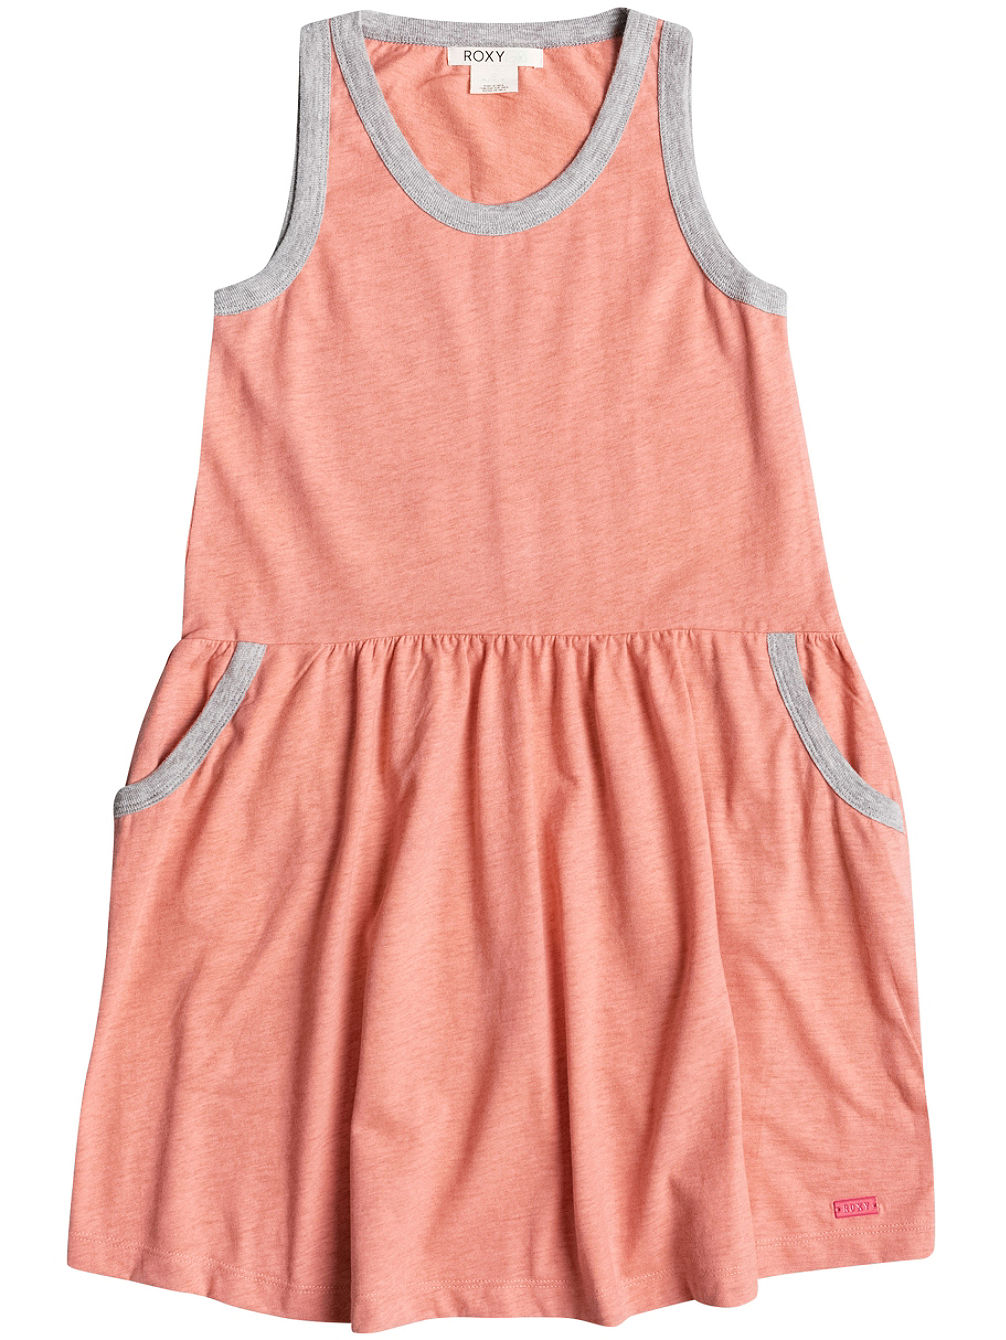 Roxy Paradise Dress Girls